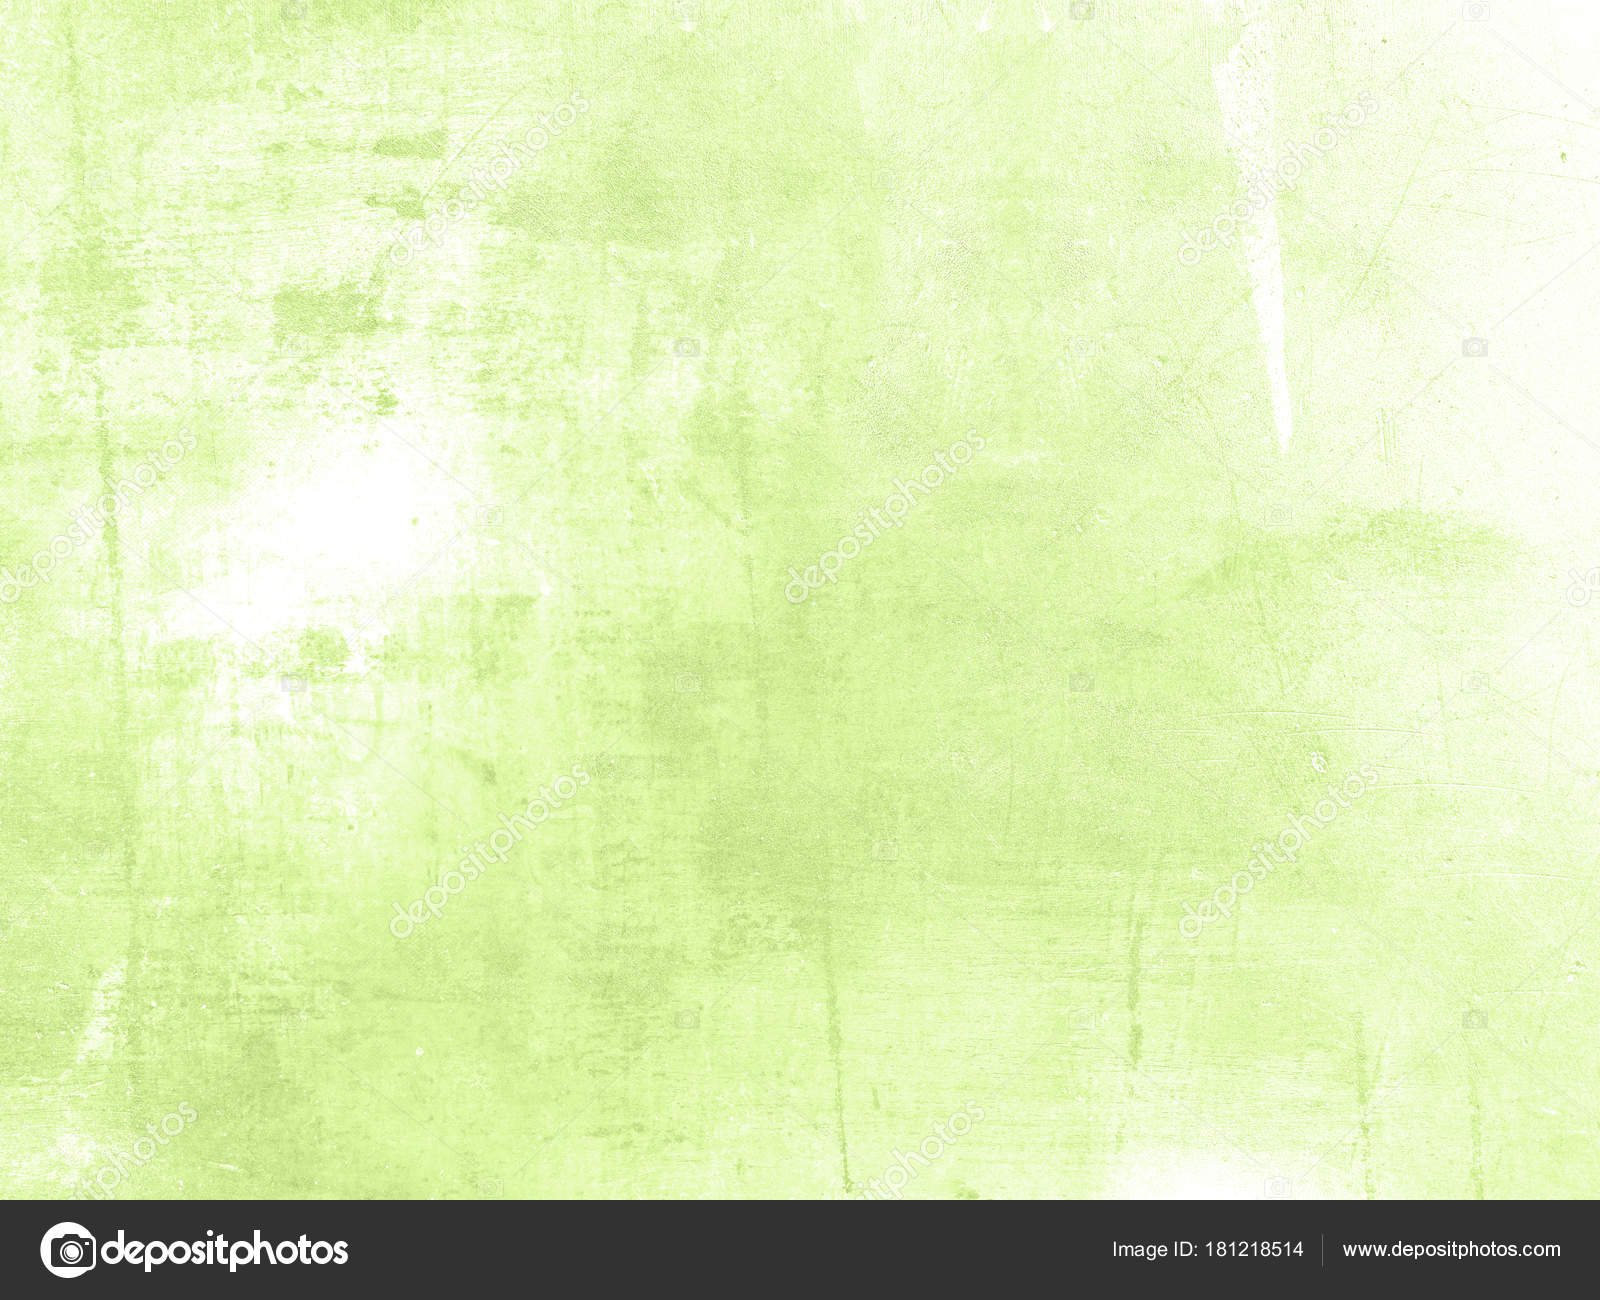 Pale green background